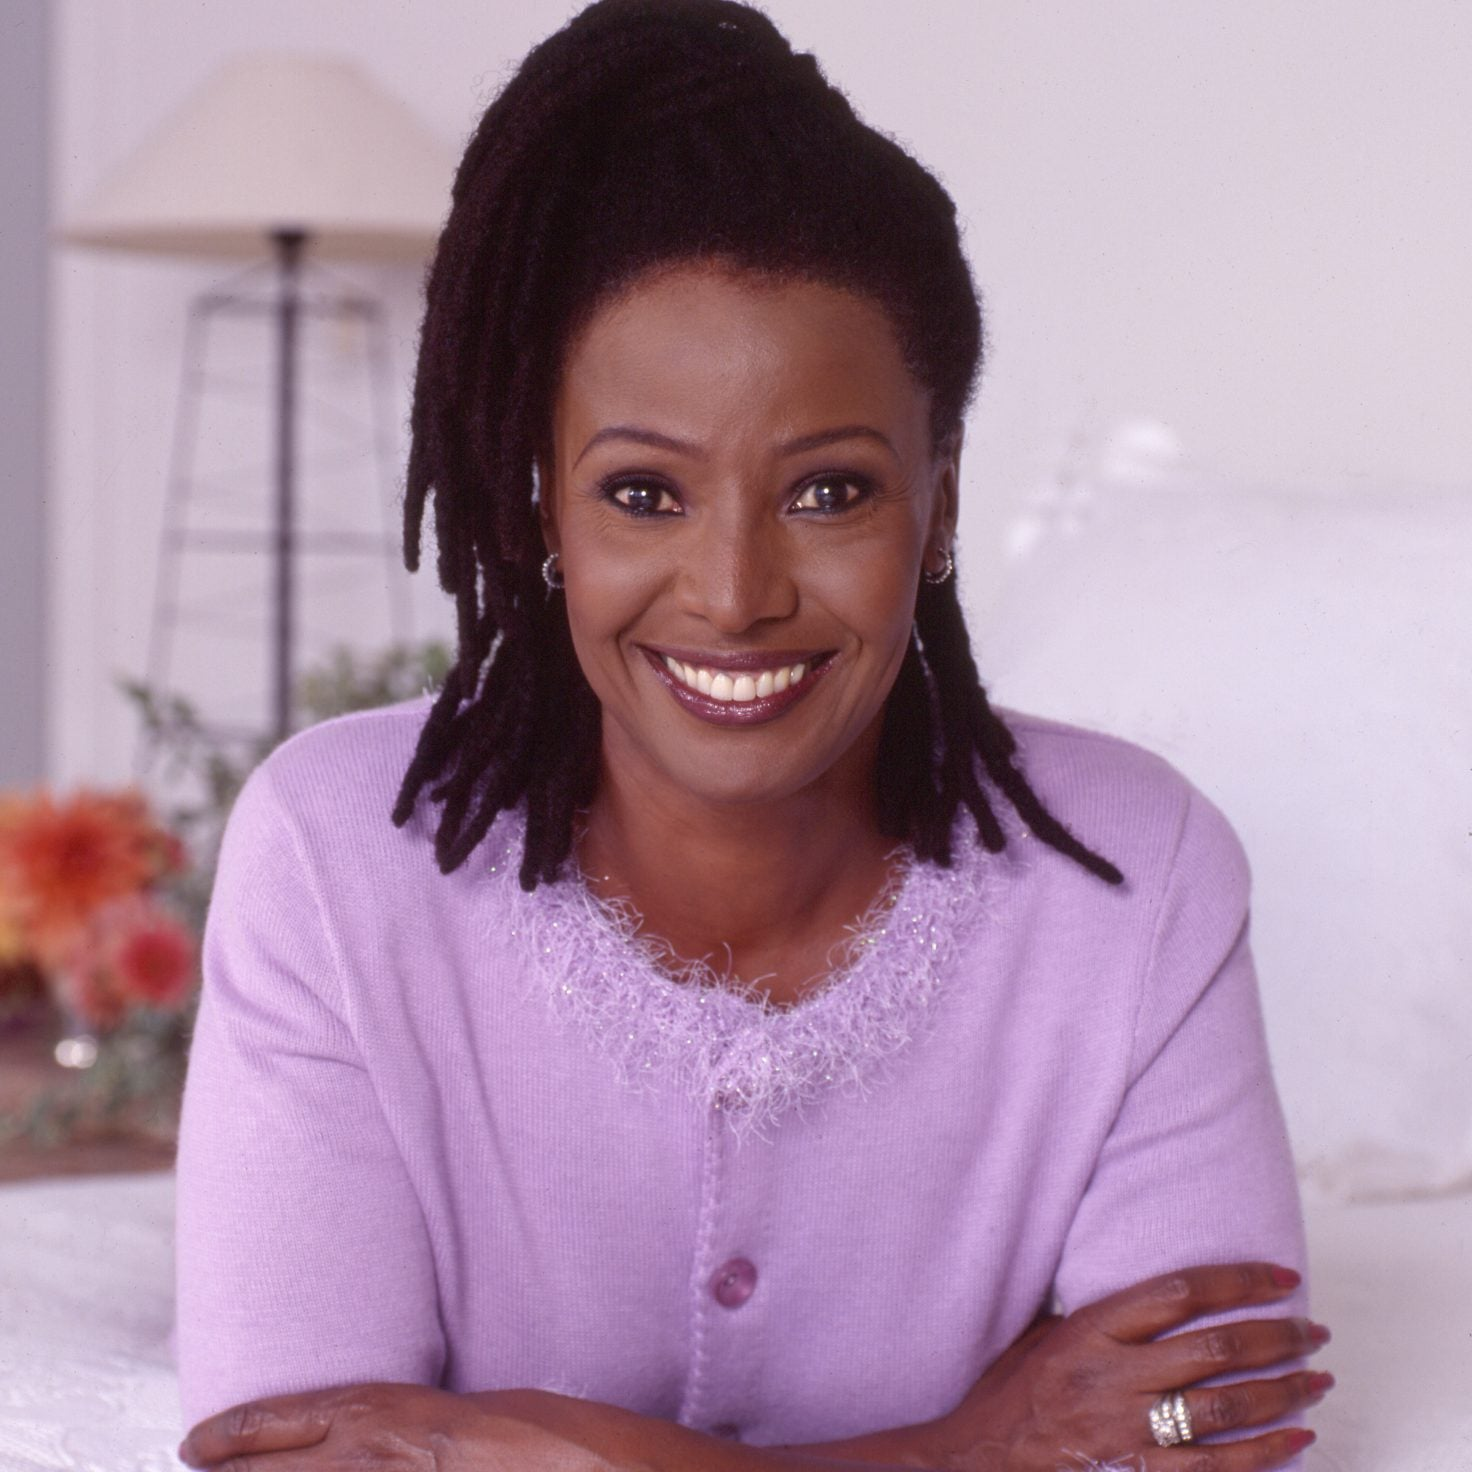 Forever Our Icon: Black Female Chefs and Culinary Influencers Remember B. Smith and Her Legendary Career